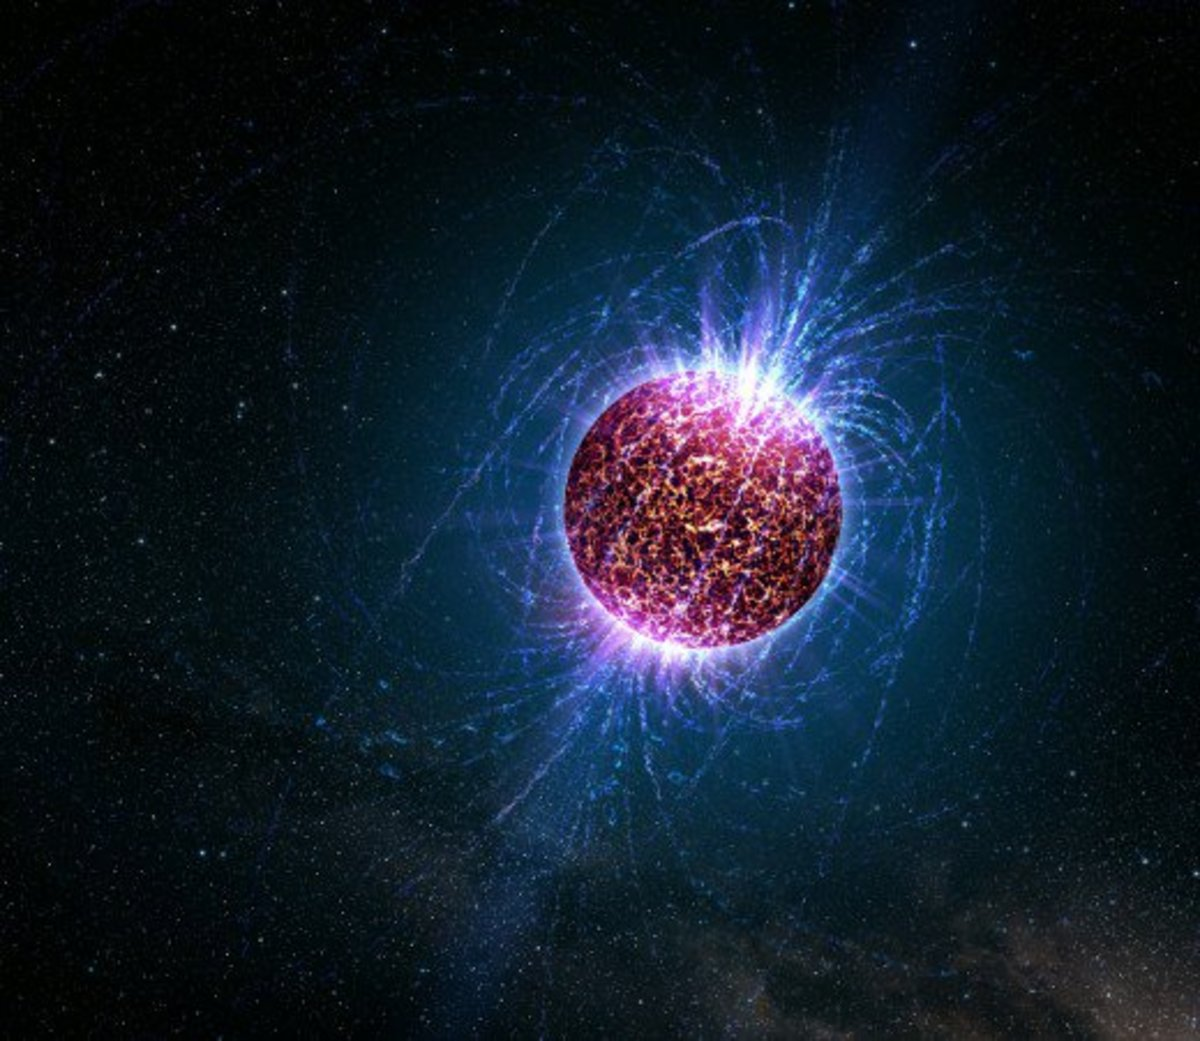 A neutron star's magnetic field lines visualized.